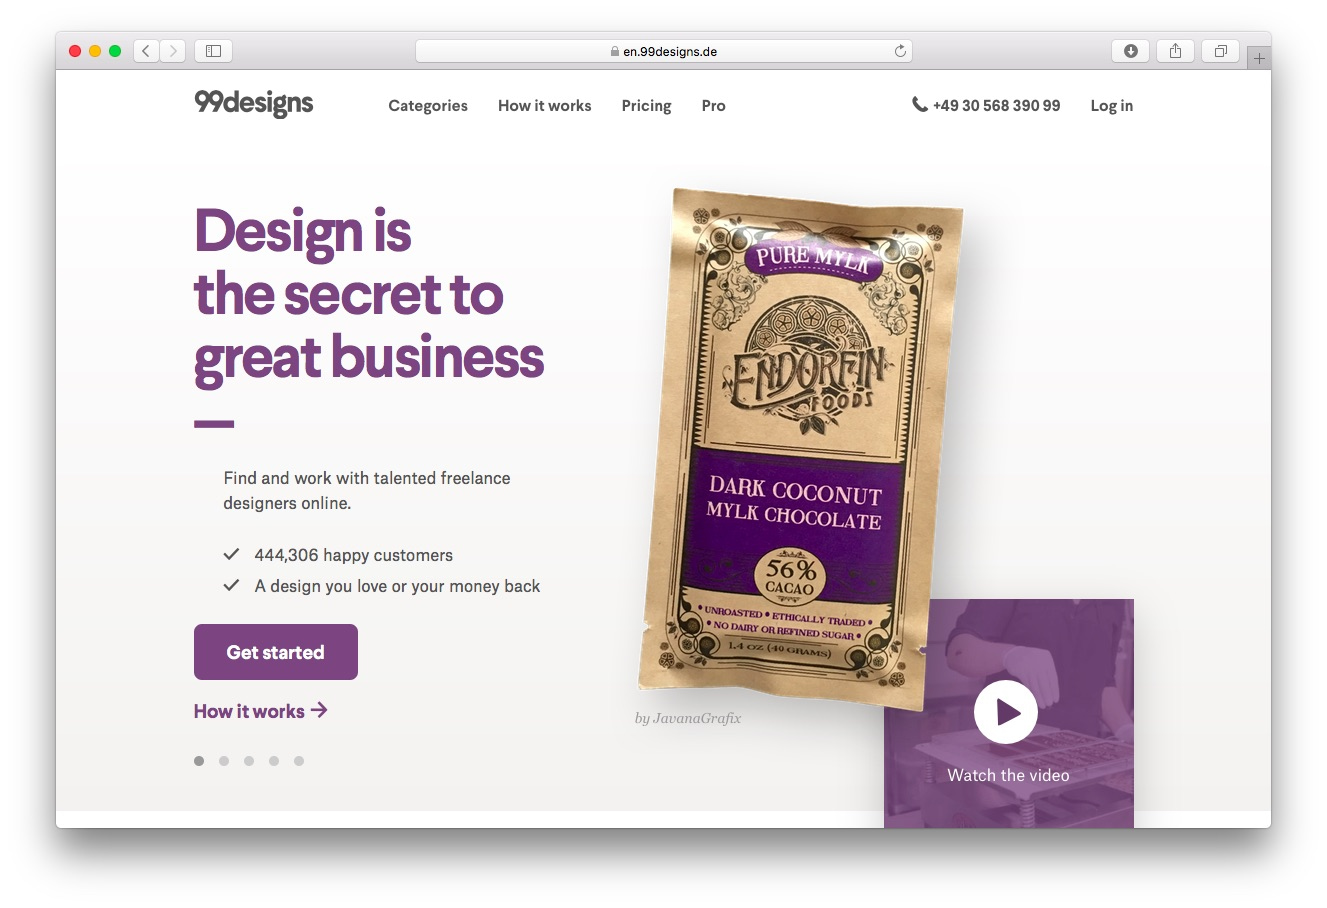 The 99designs homepage, where you can get a logo designed